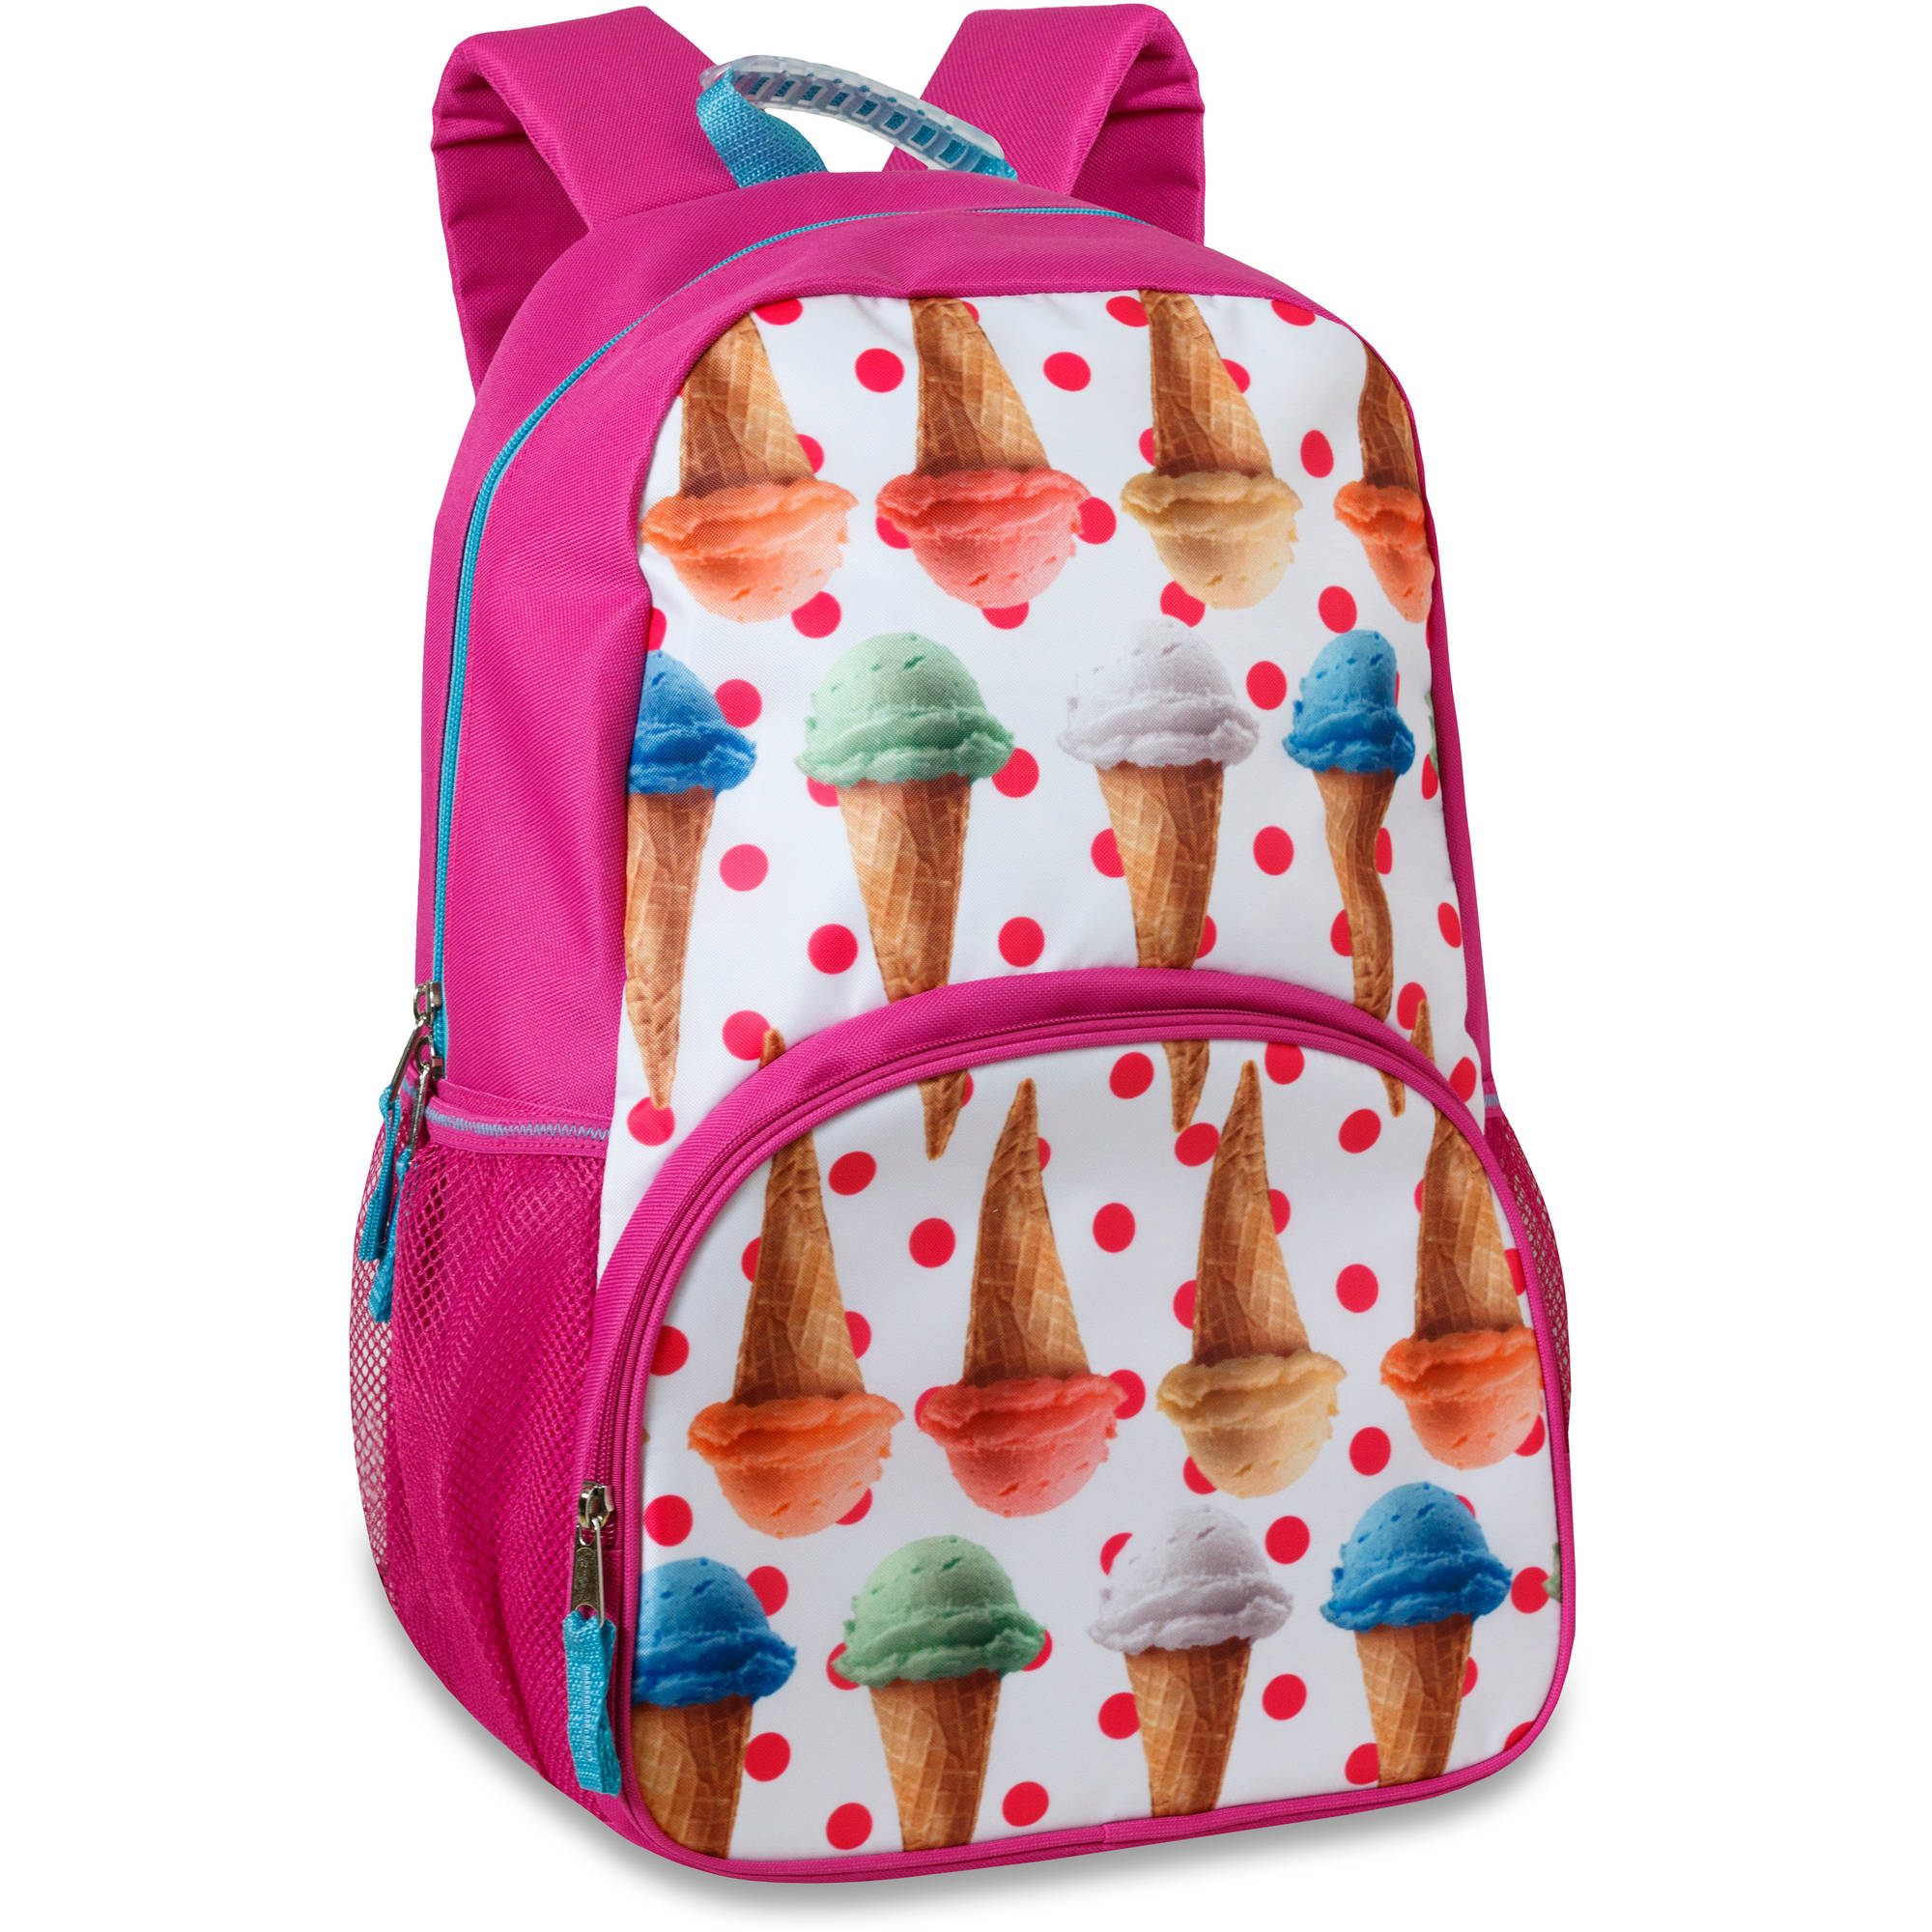 17.5 Inch Ice Cream Cones Photo Real Backpack